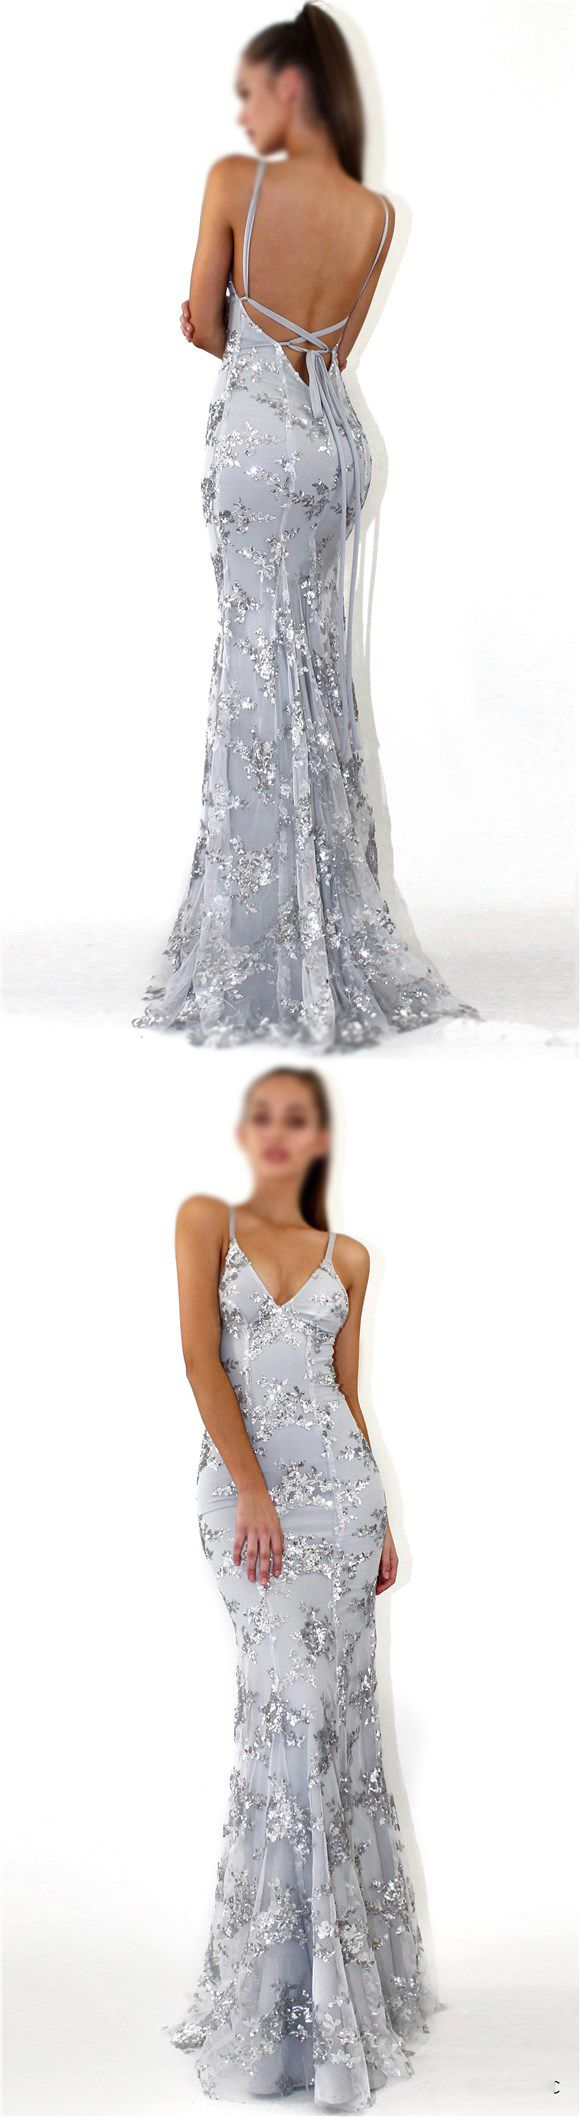 7391abbddc8 Sequin Silver Sparkly Mermaid Popular Newest Prom Dresses, Fashion Gown,  Evening Dresses, PD0305